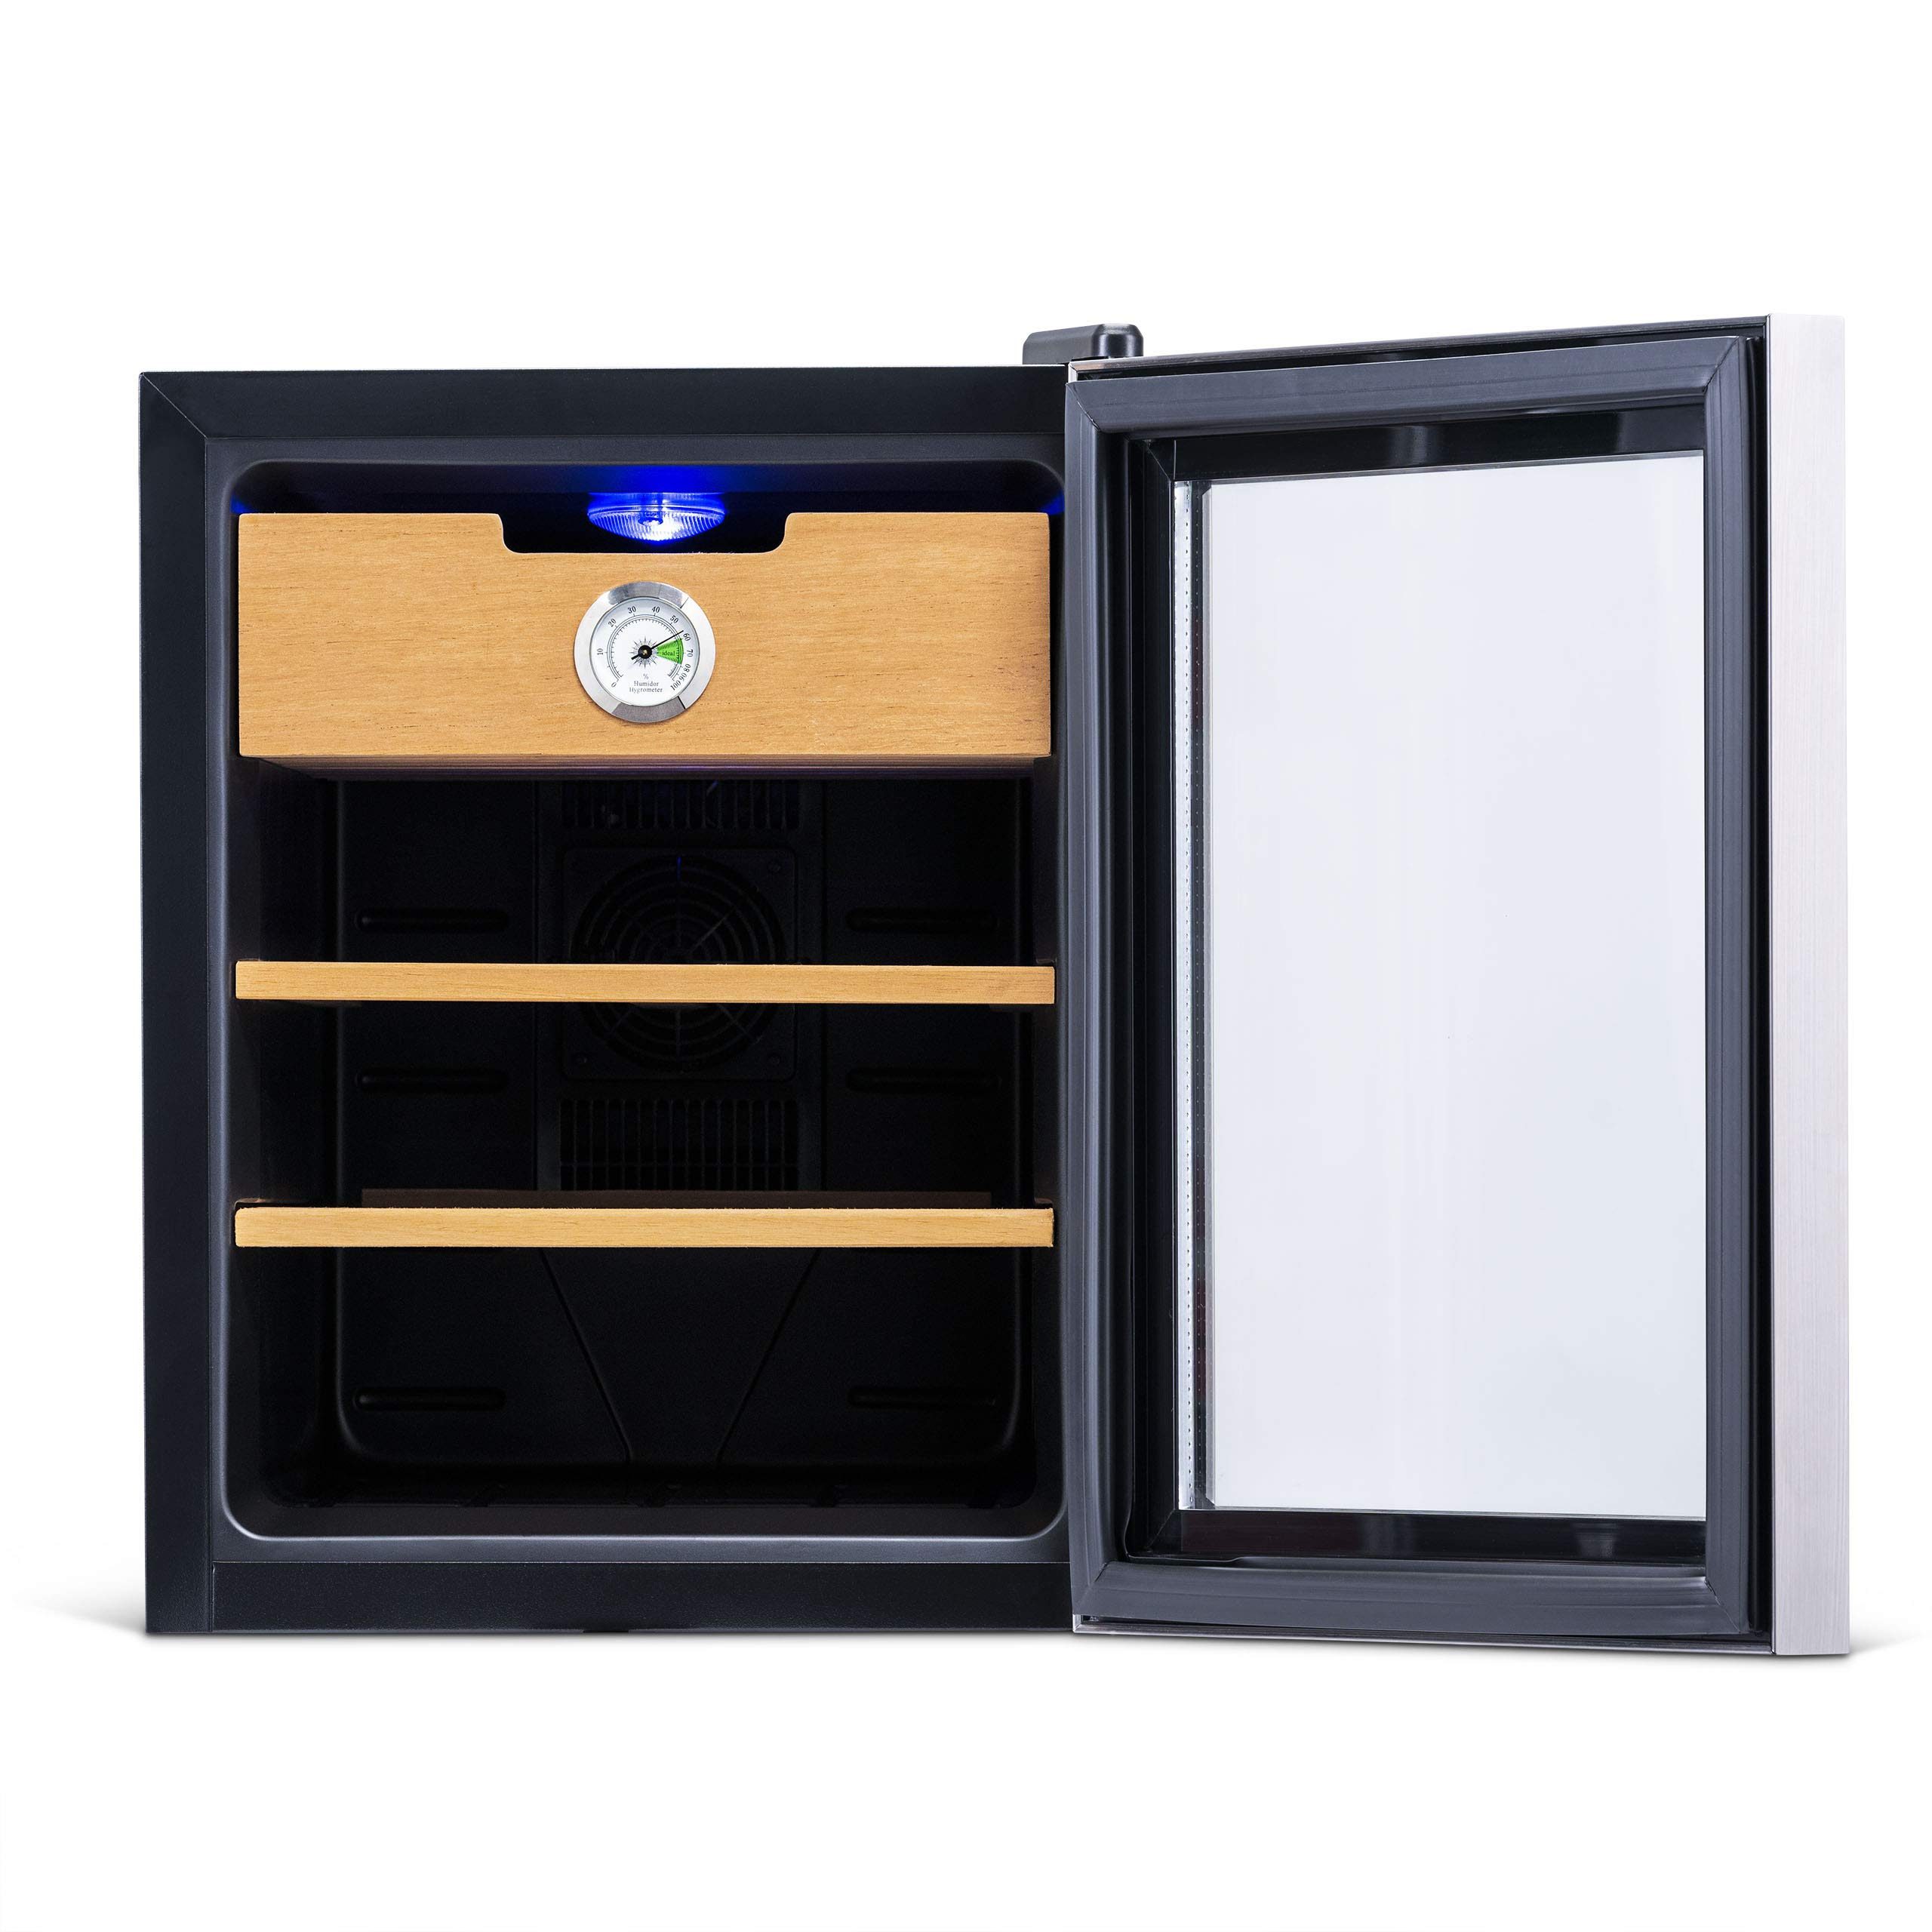 NewAir CC-100H Cigar Cooler and Humidor, 250 Count by NewAir (Image #8)